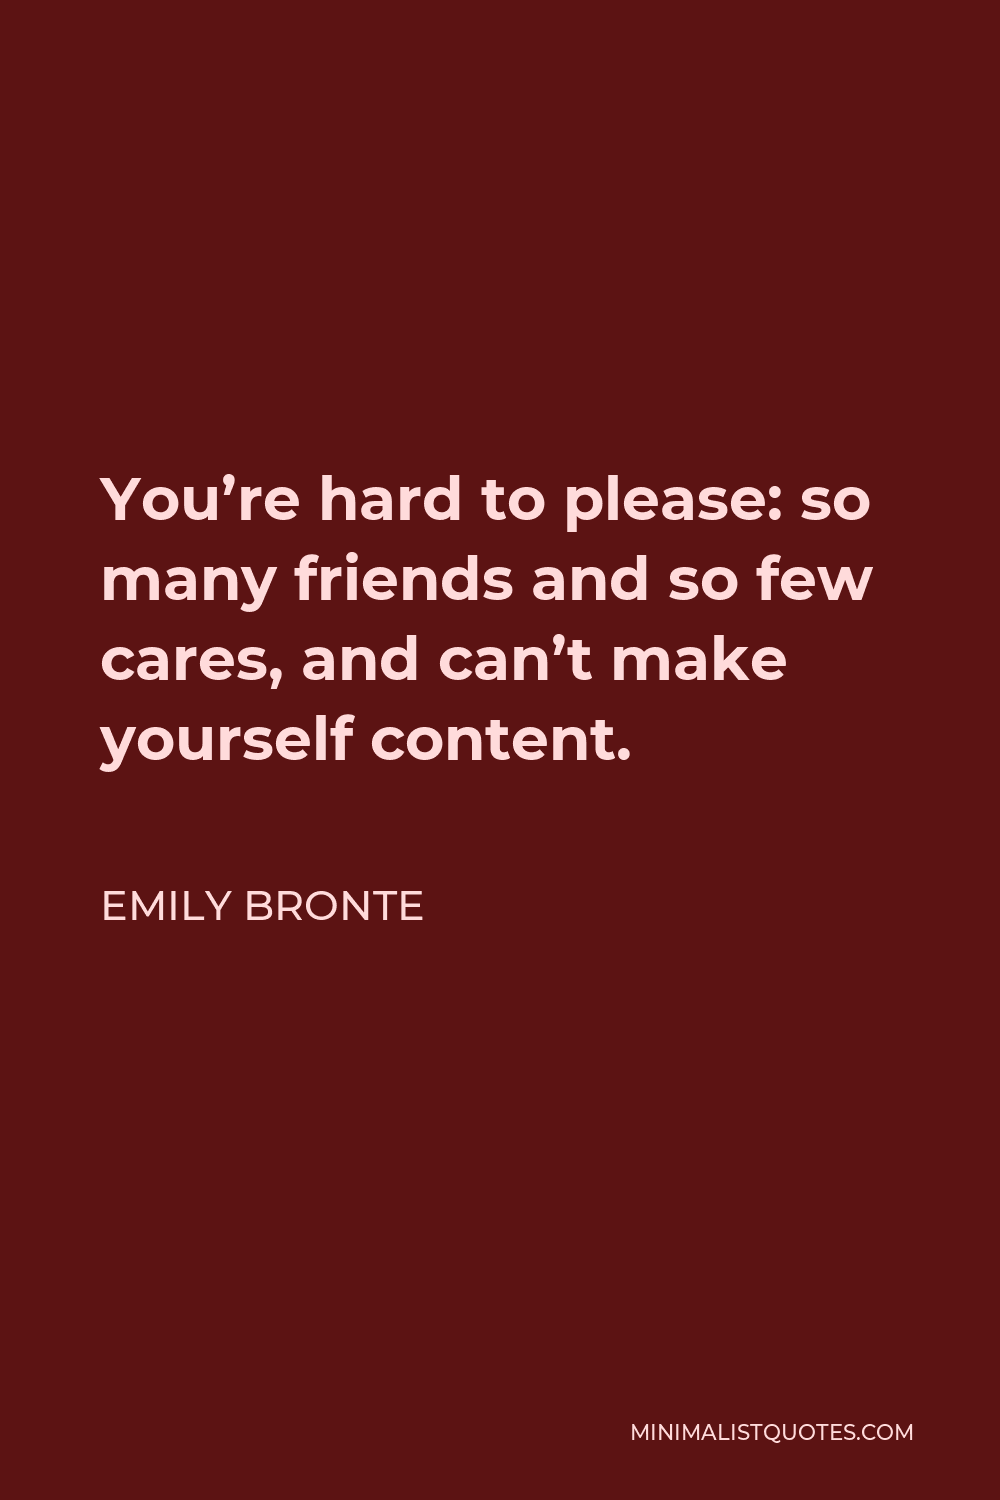 Emily Bronte Quote - You're hard to please: so many friends and so few cares, and can't make yourself content.